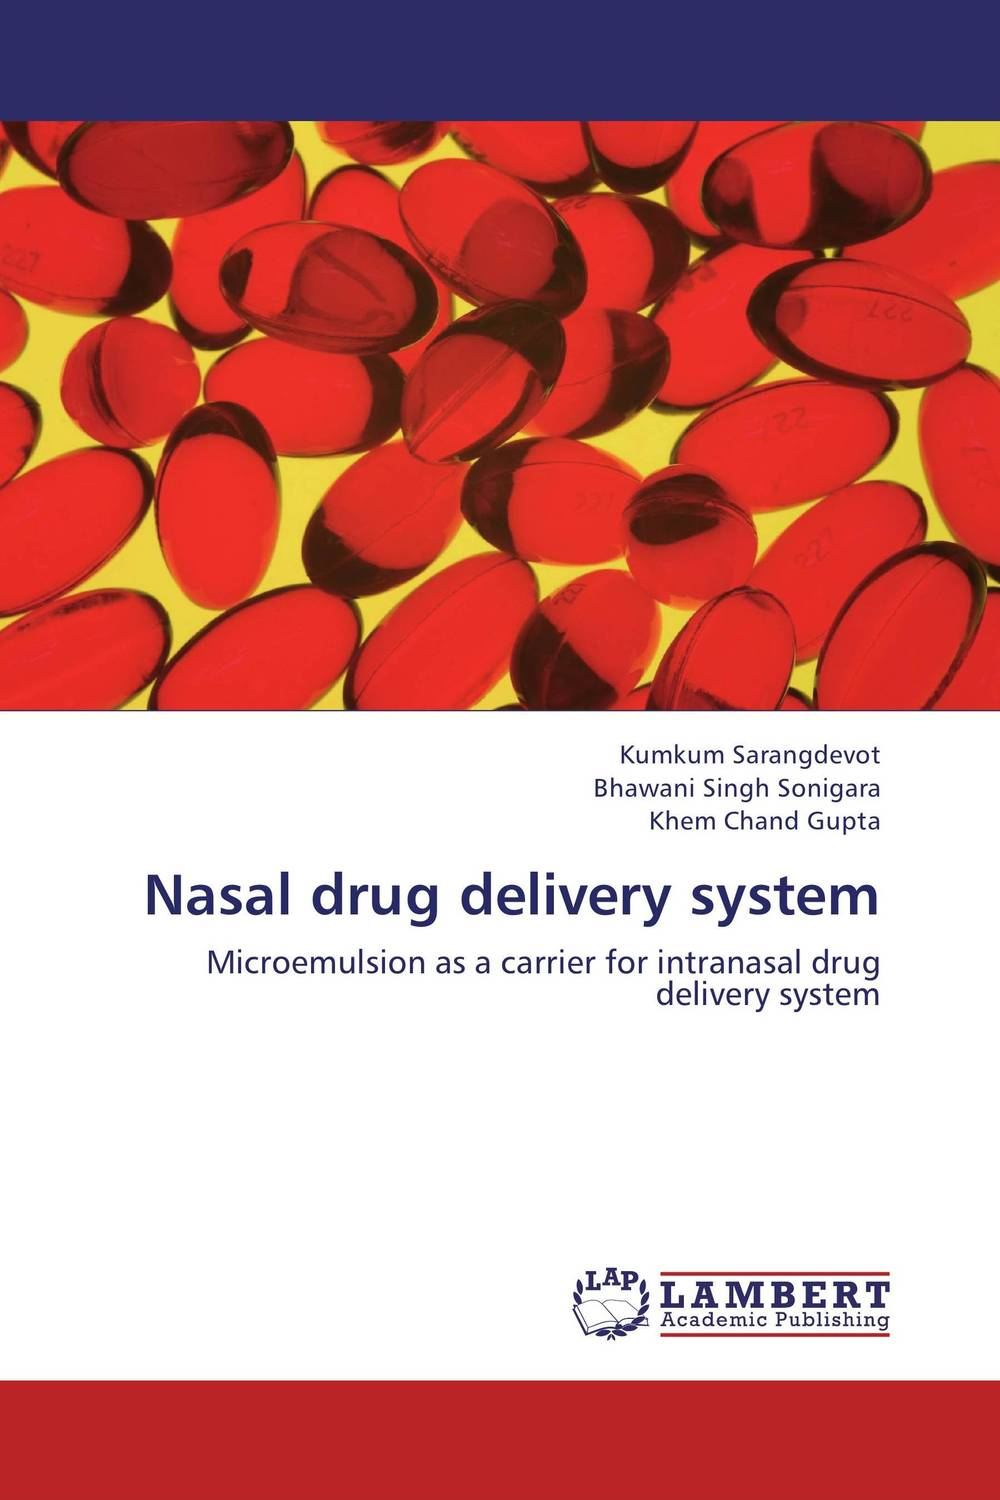 Nasal drug delivery system critical success criteria for public housing project delivery in ghana